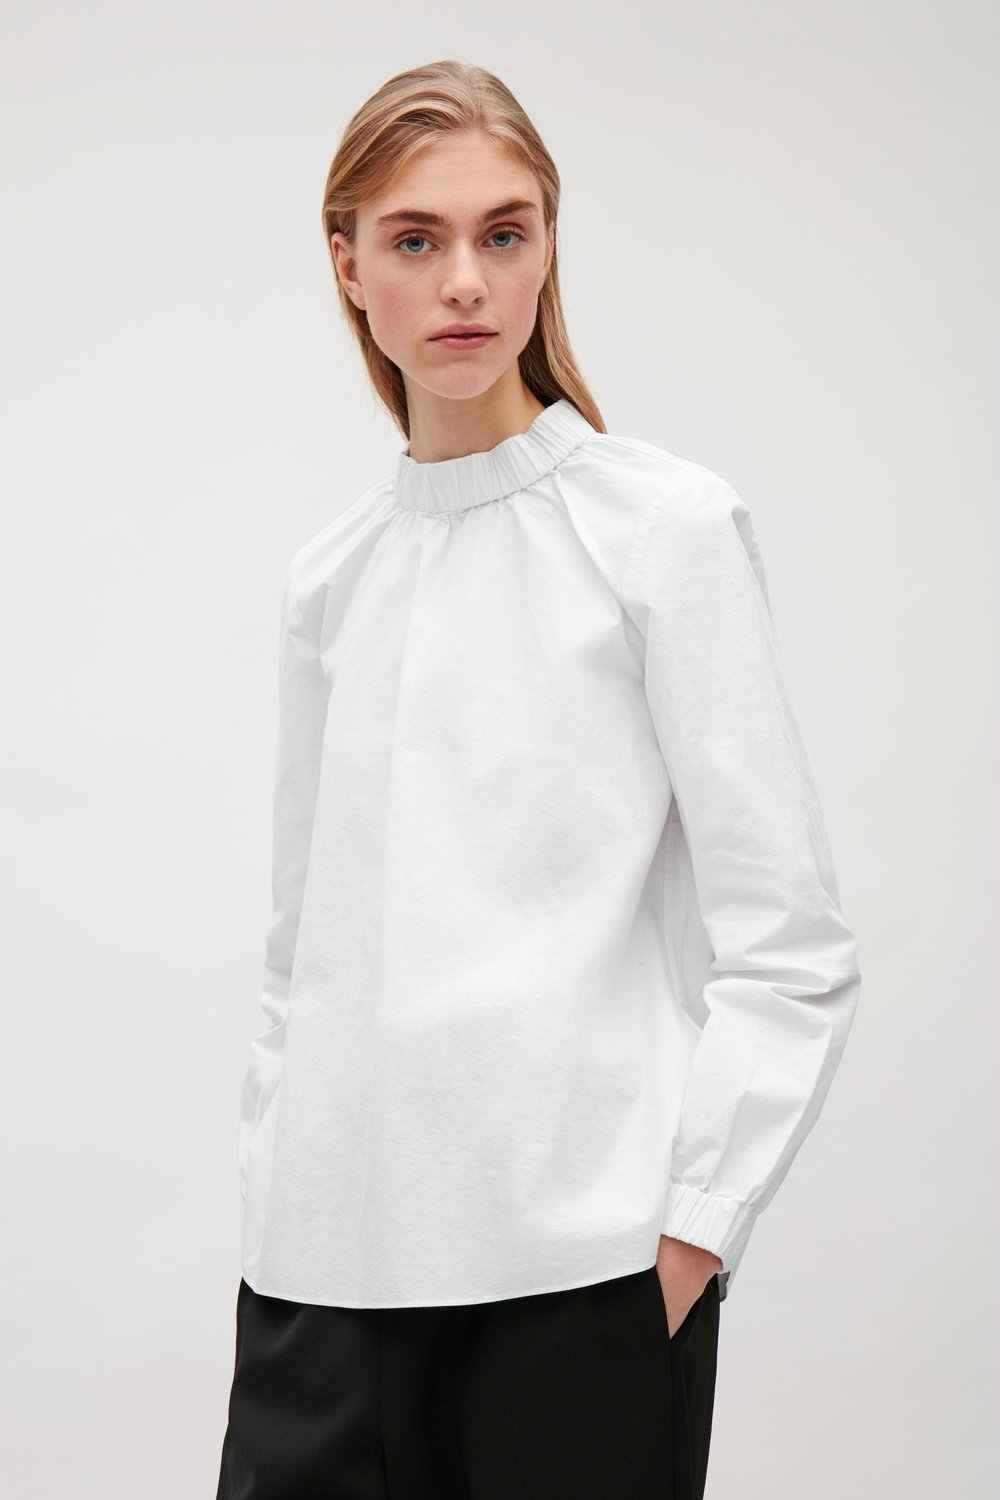 COS White top with elastic details $94